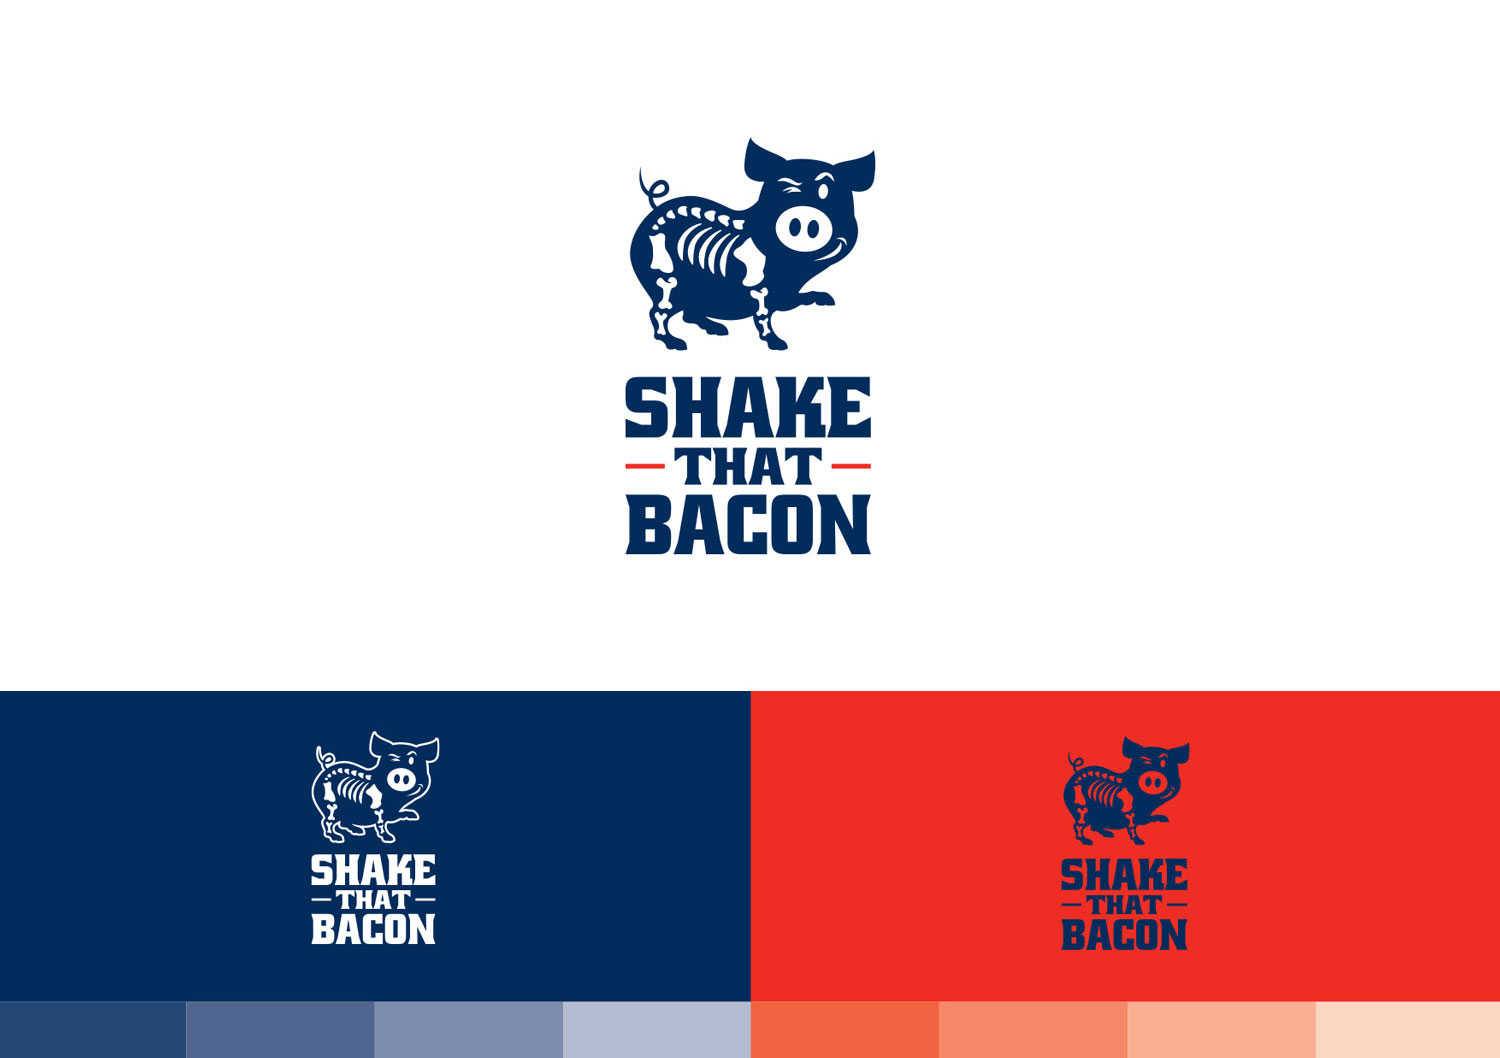 Shake That Bacon